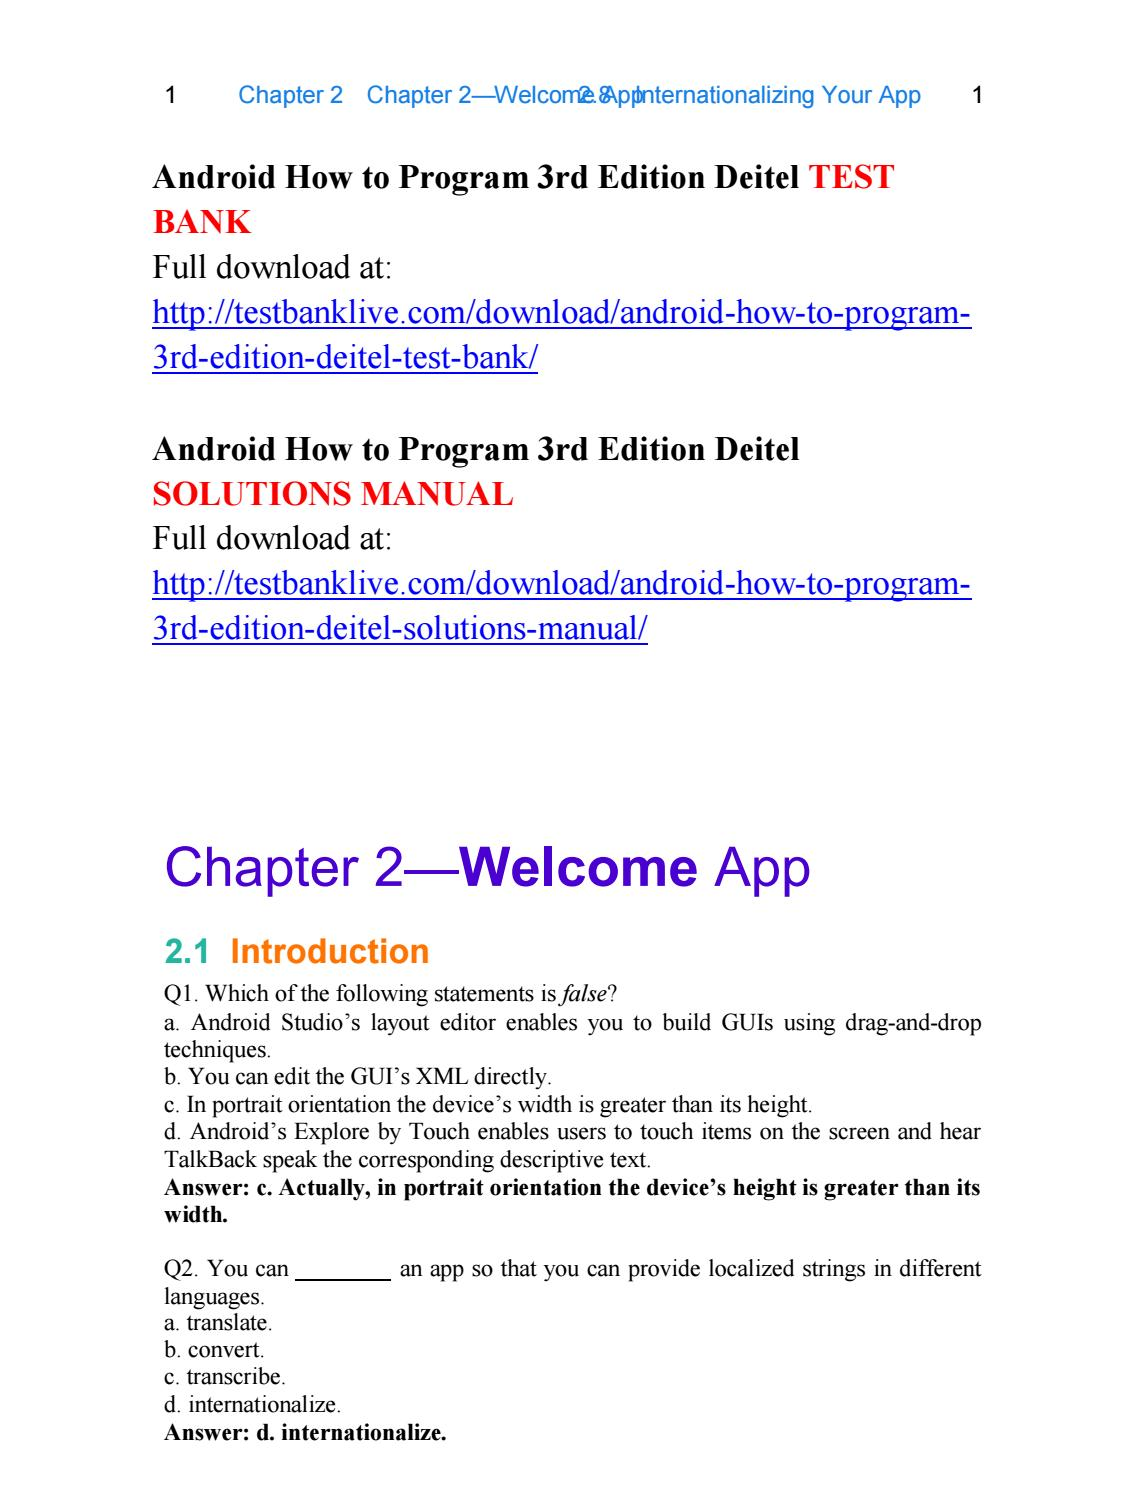 Android how to program 3rd edition deitel test bank by